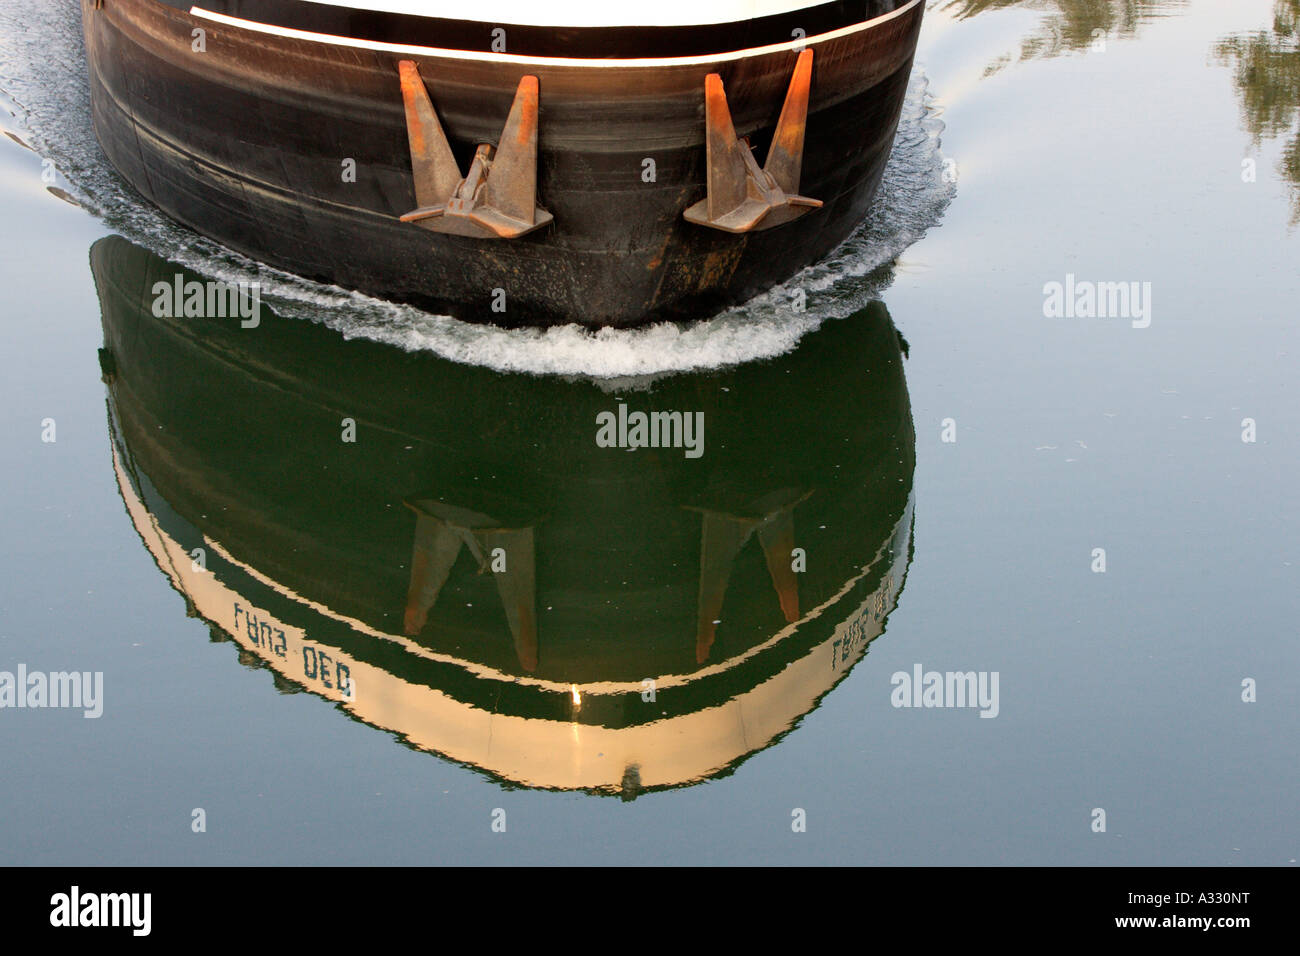 Bow of a ship and its reflexion on the water surface - Stock Image